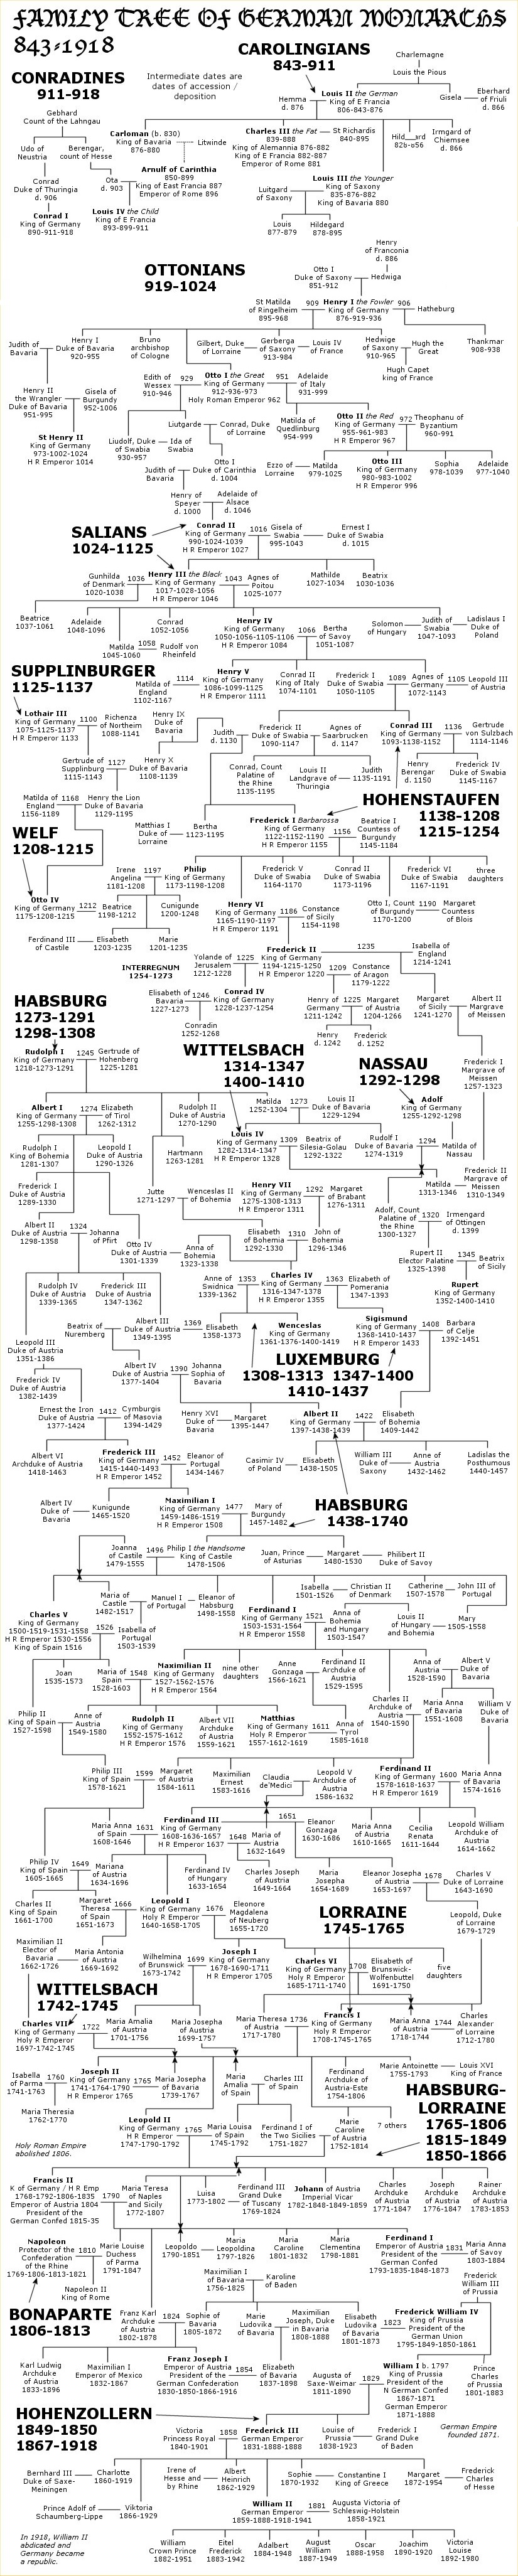 German monarchs family tree.jpg